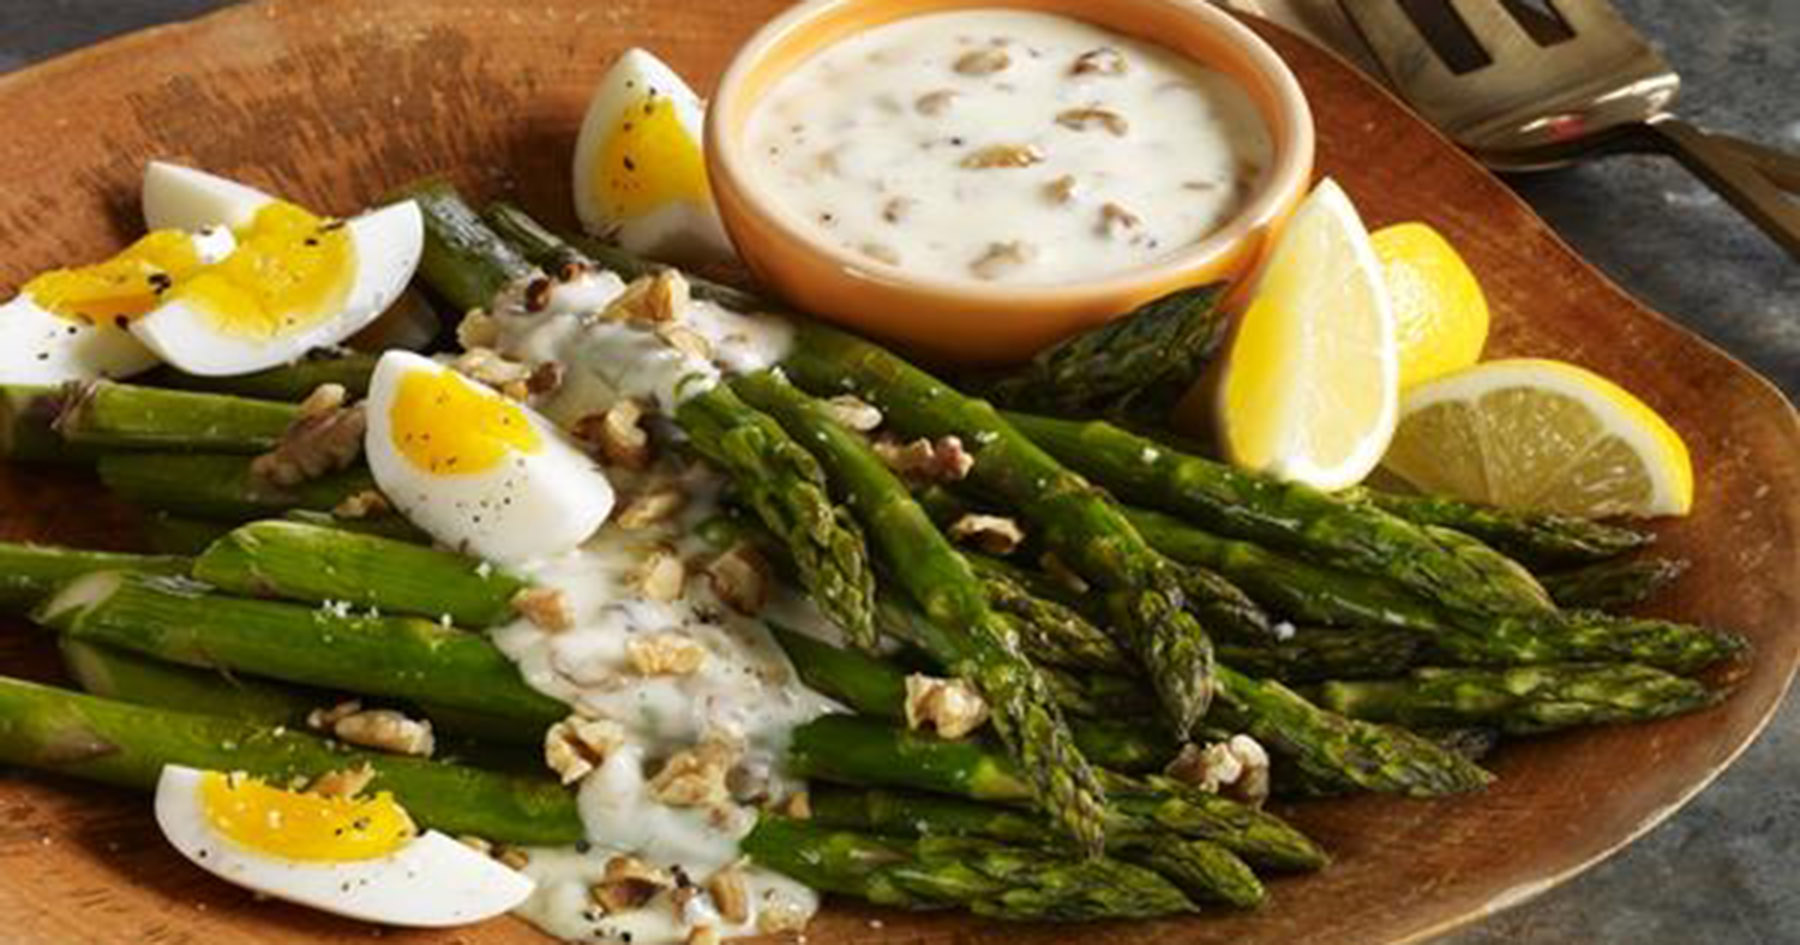 Warm Asparagus Salad With Toasted Walnut-Aioli Dressing